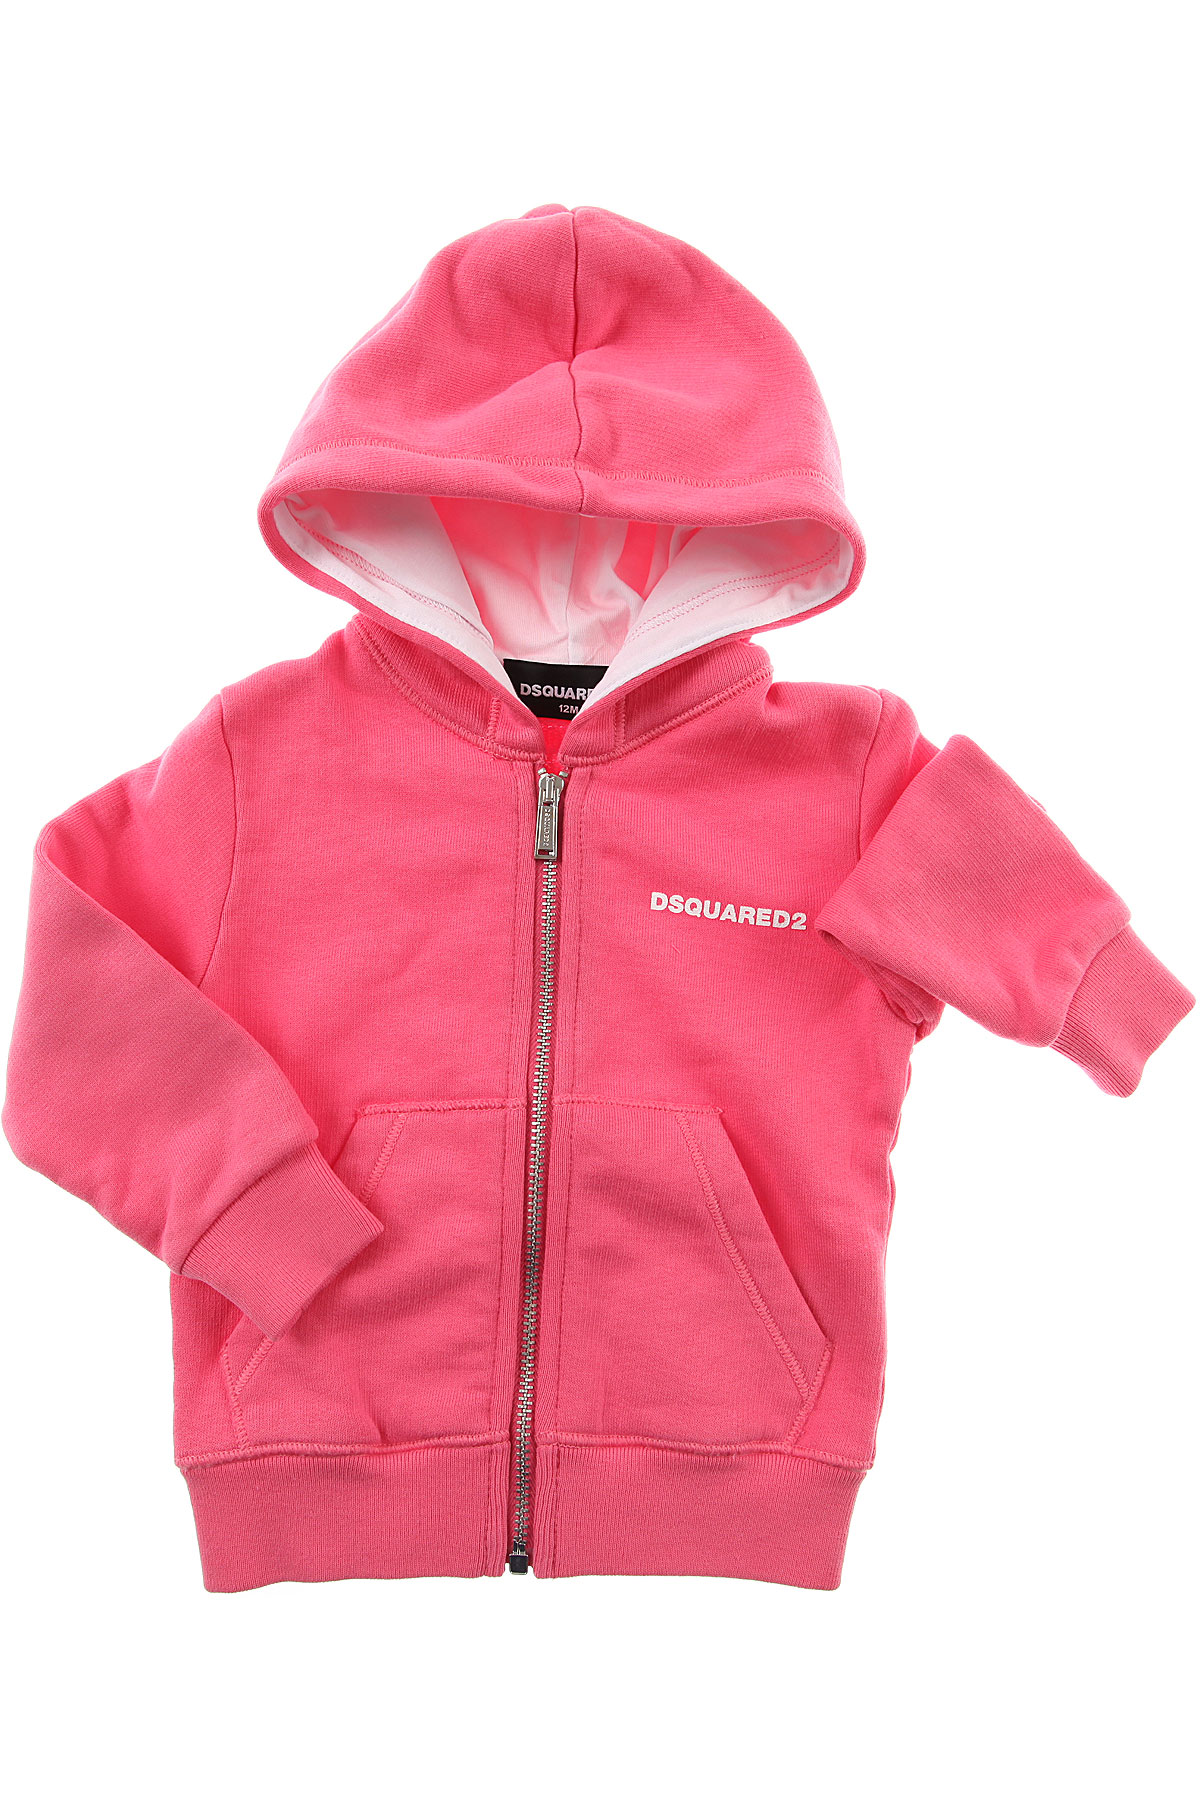 Image of Dsquared2 Baby Sweatshirts & Hoodies for Girls, Pink, Cotton, 2017, 12M 18M 2Y 3Y